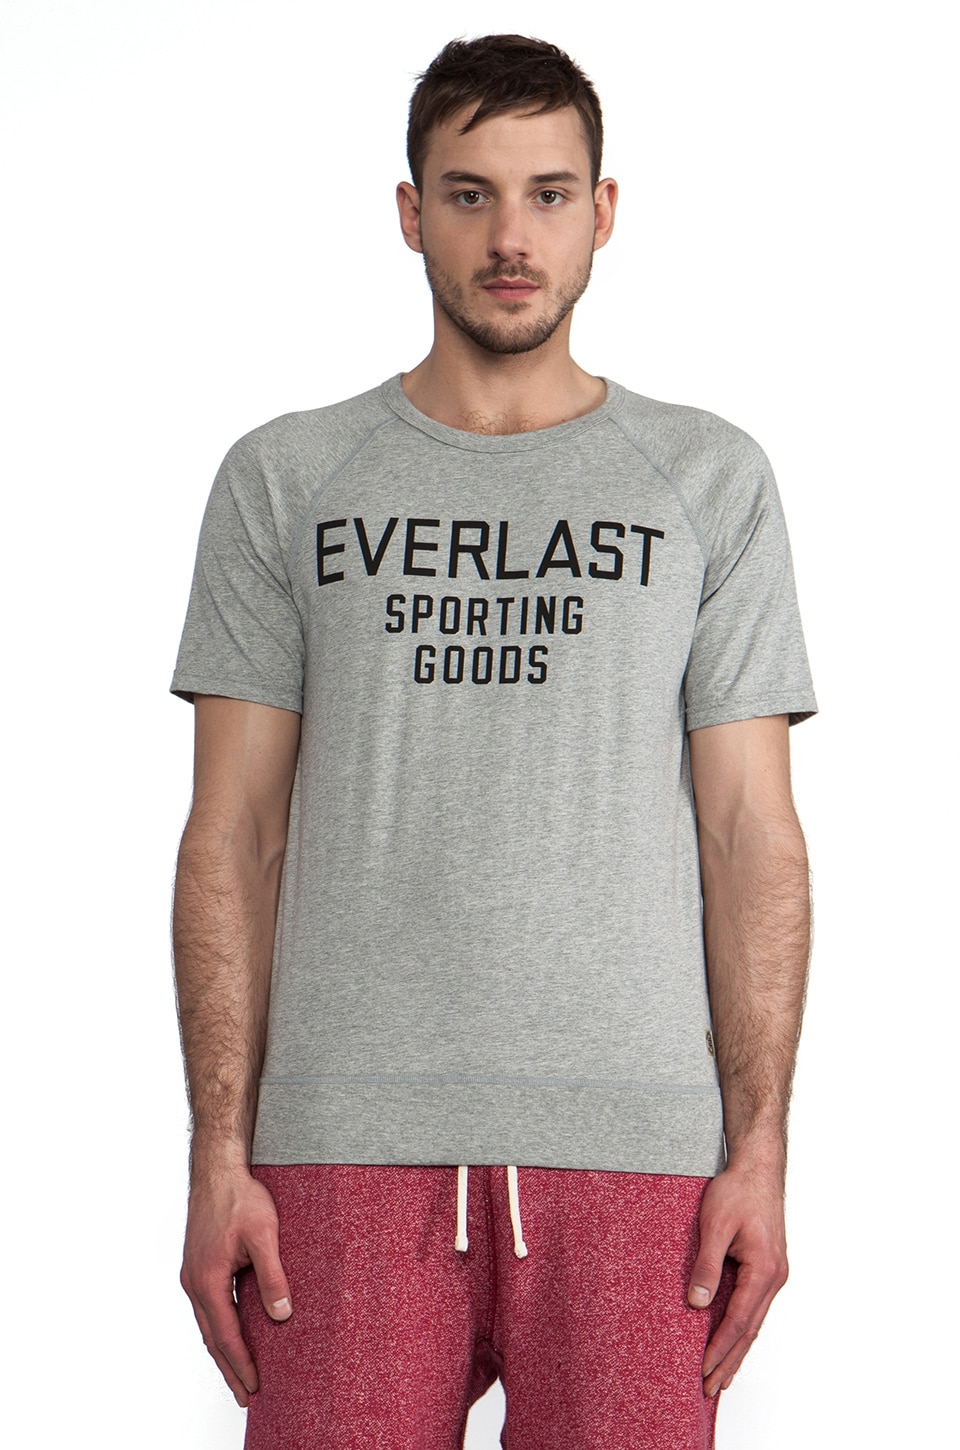 Reigning Champ x Everlast Sporting Goods Raglan Tee in Heather Grey